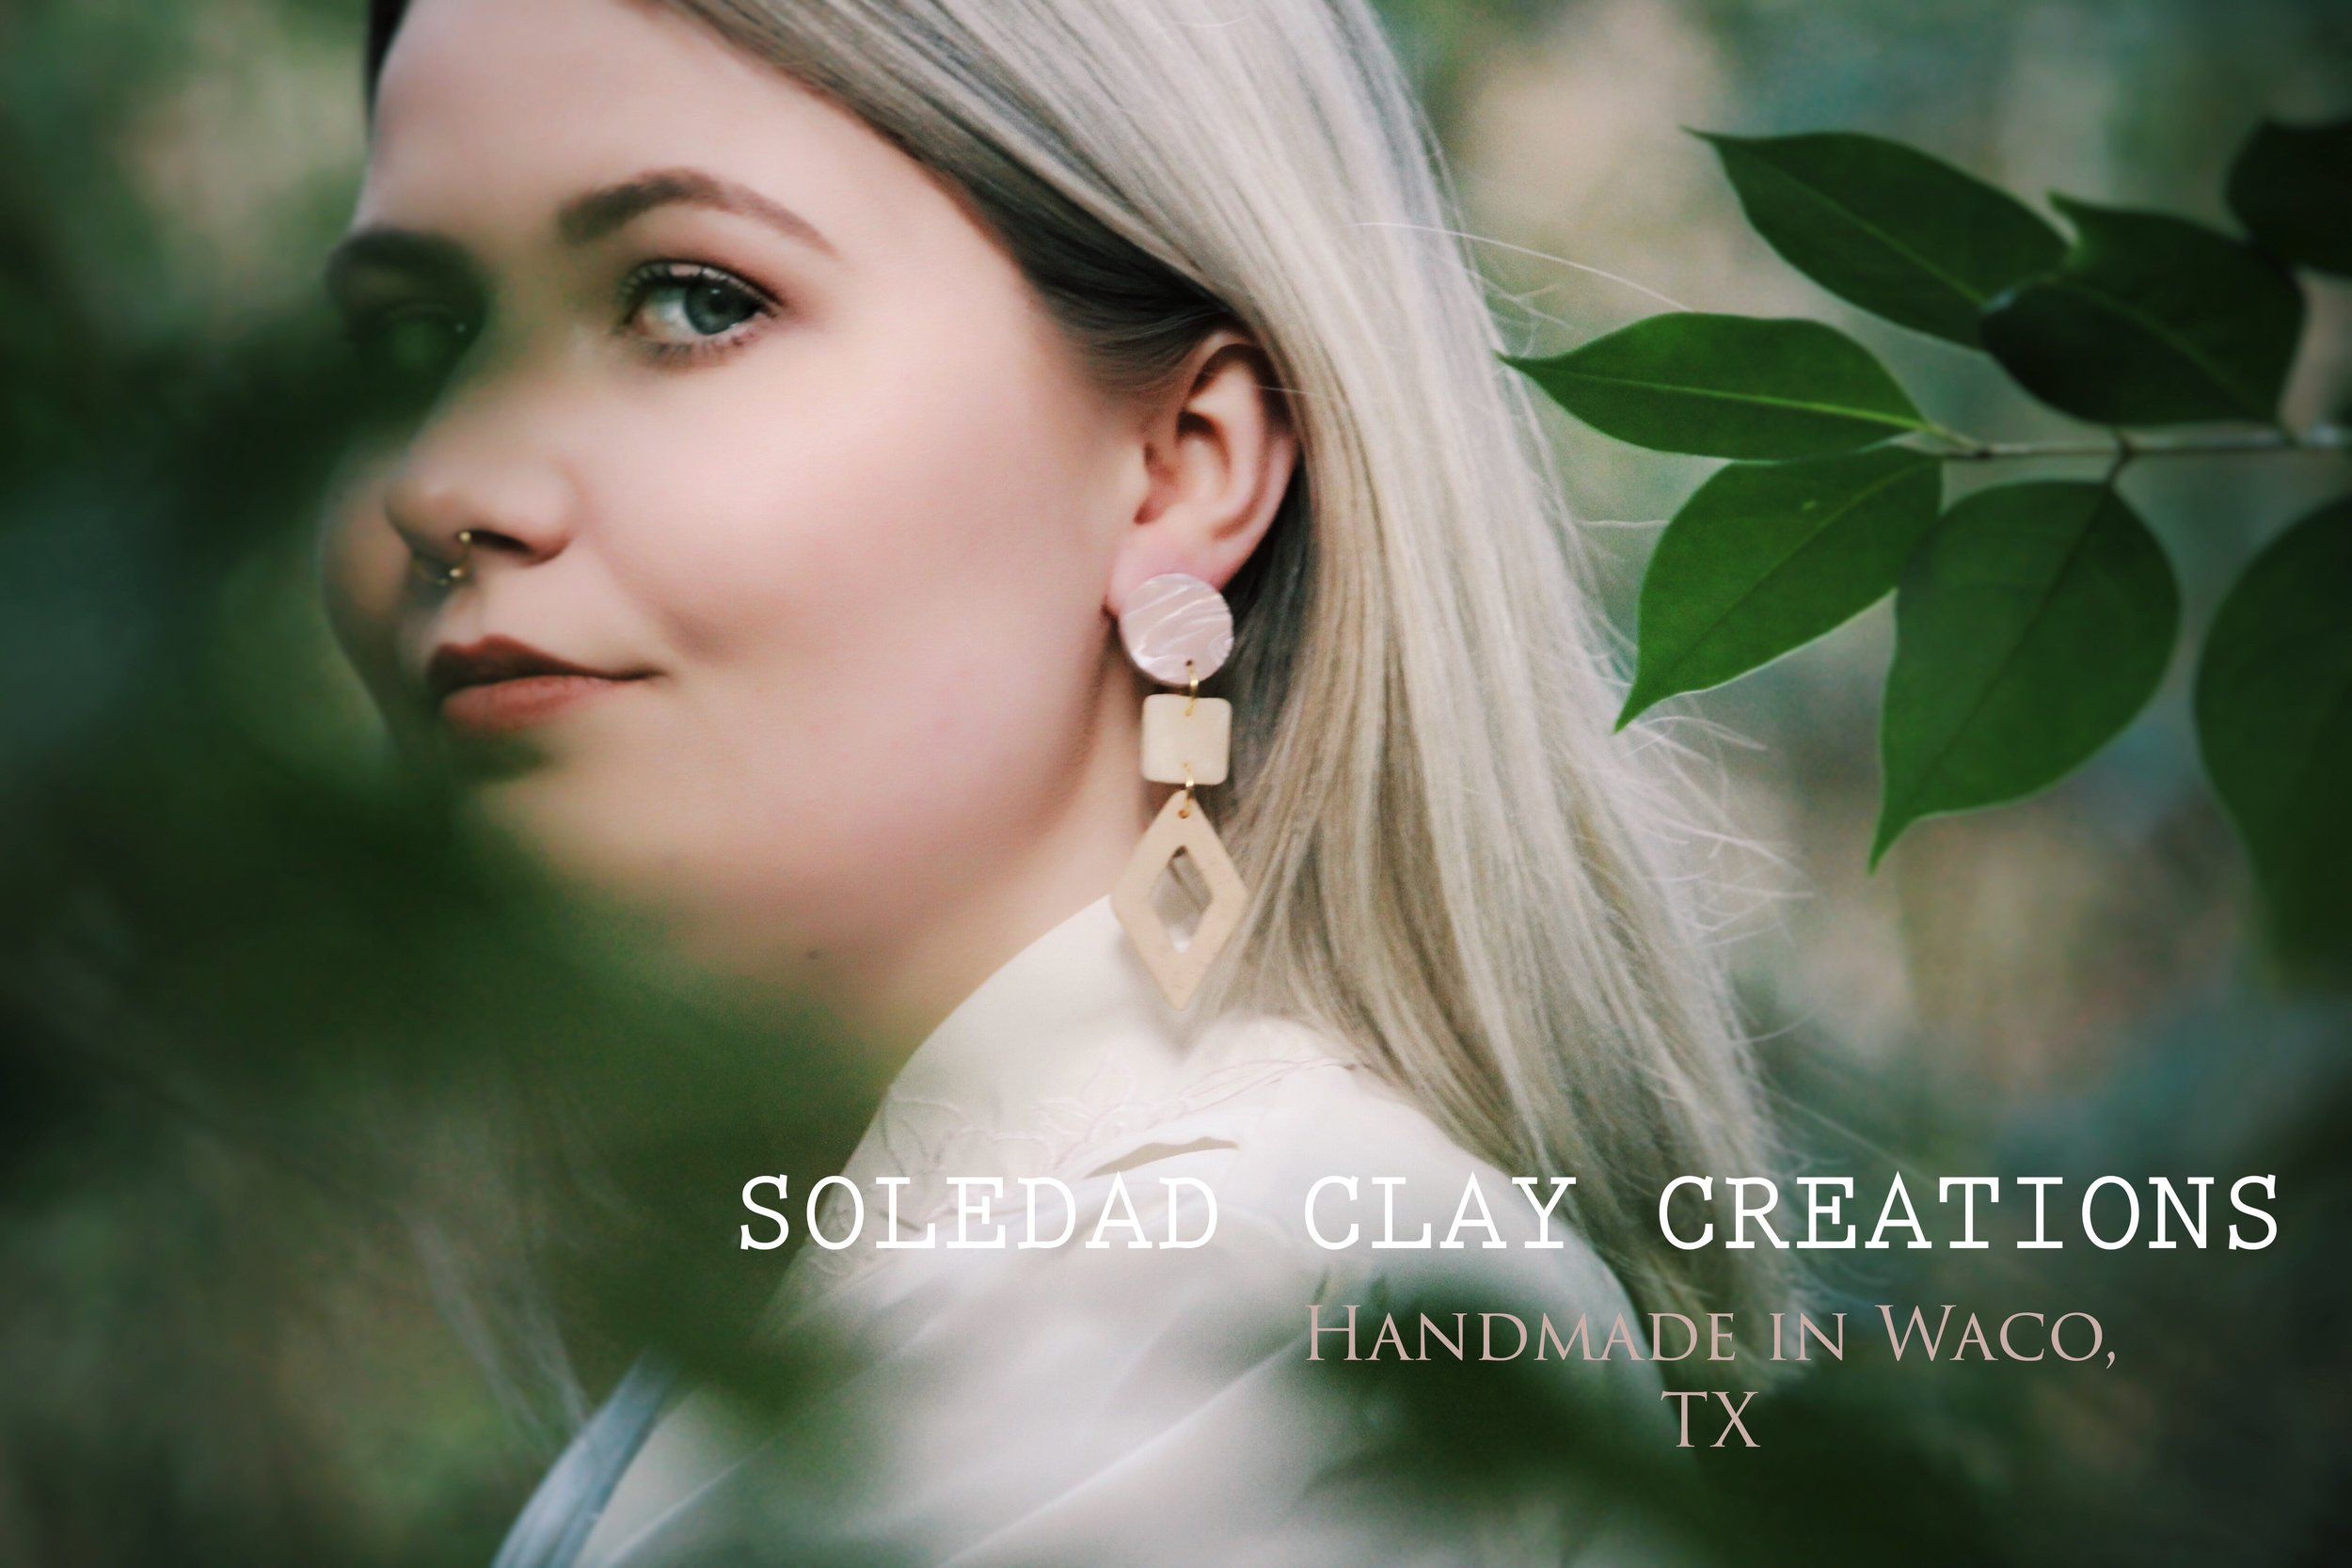 Soledad Clay Creations